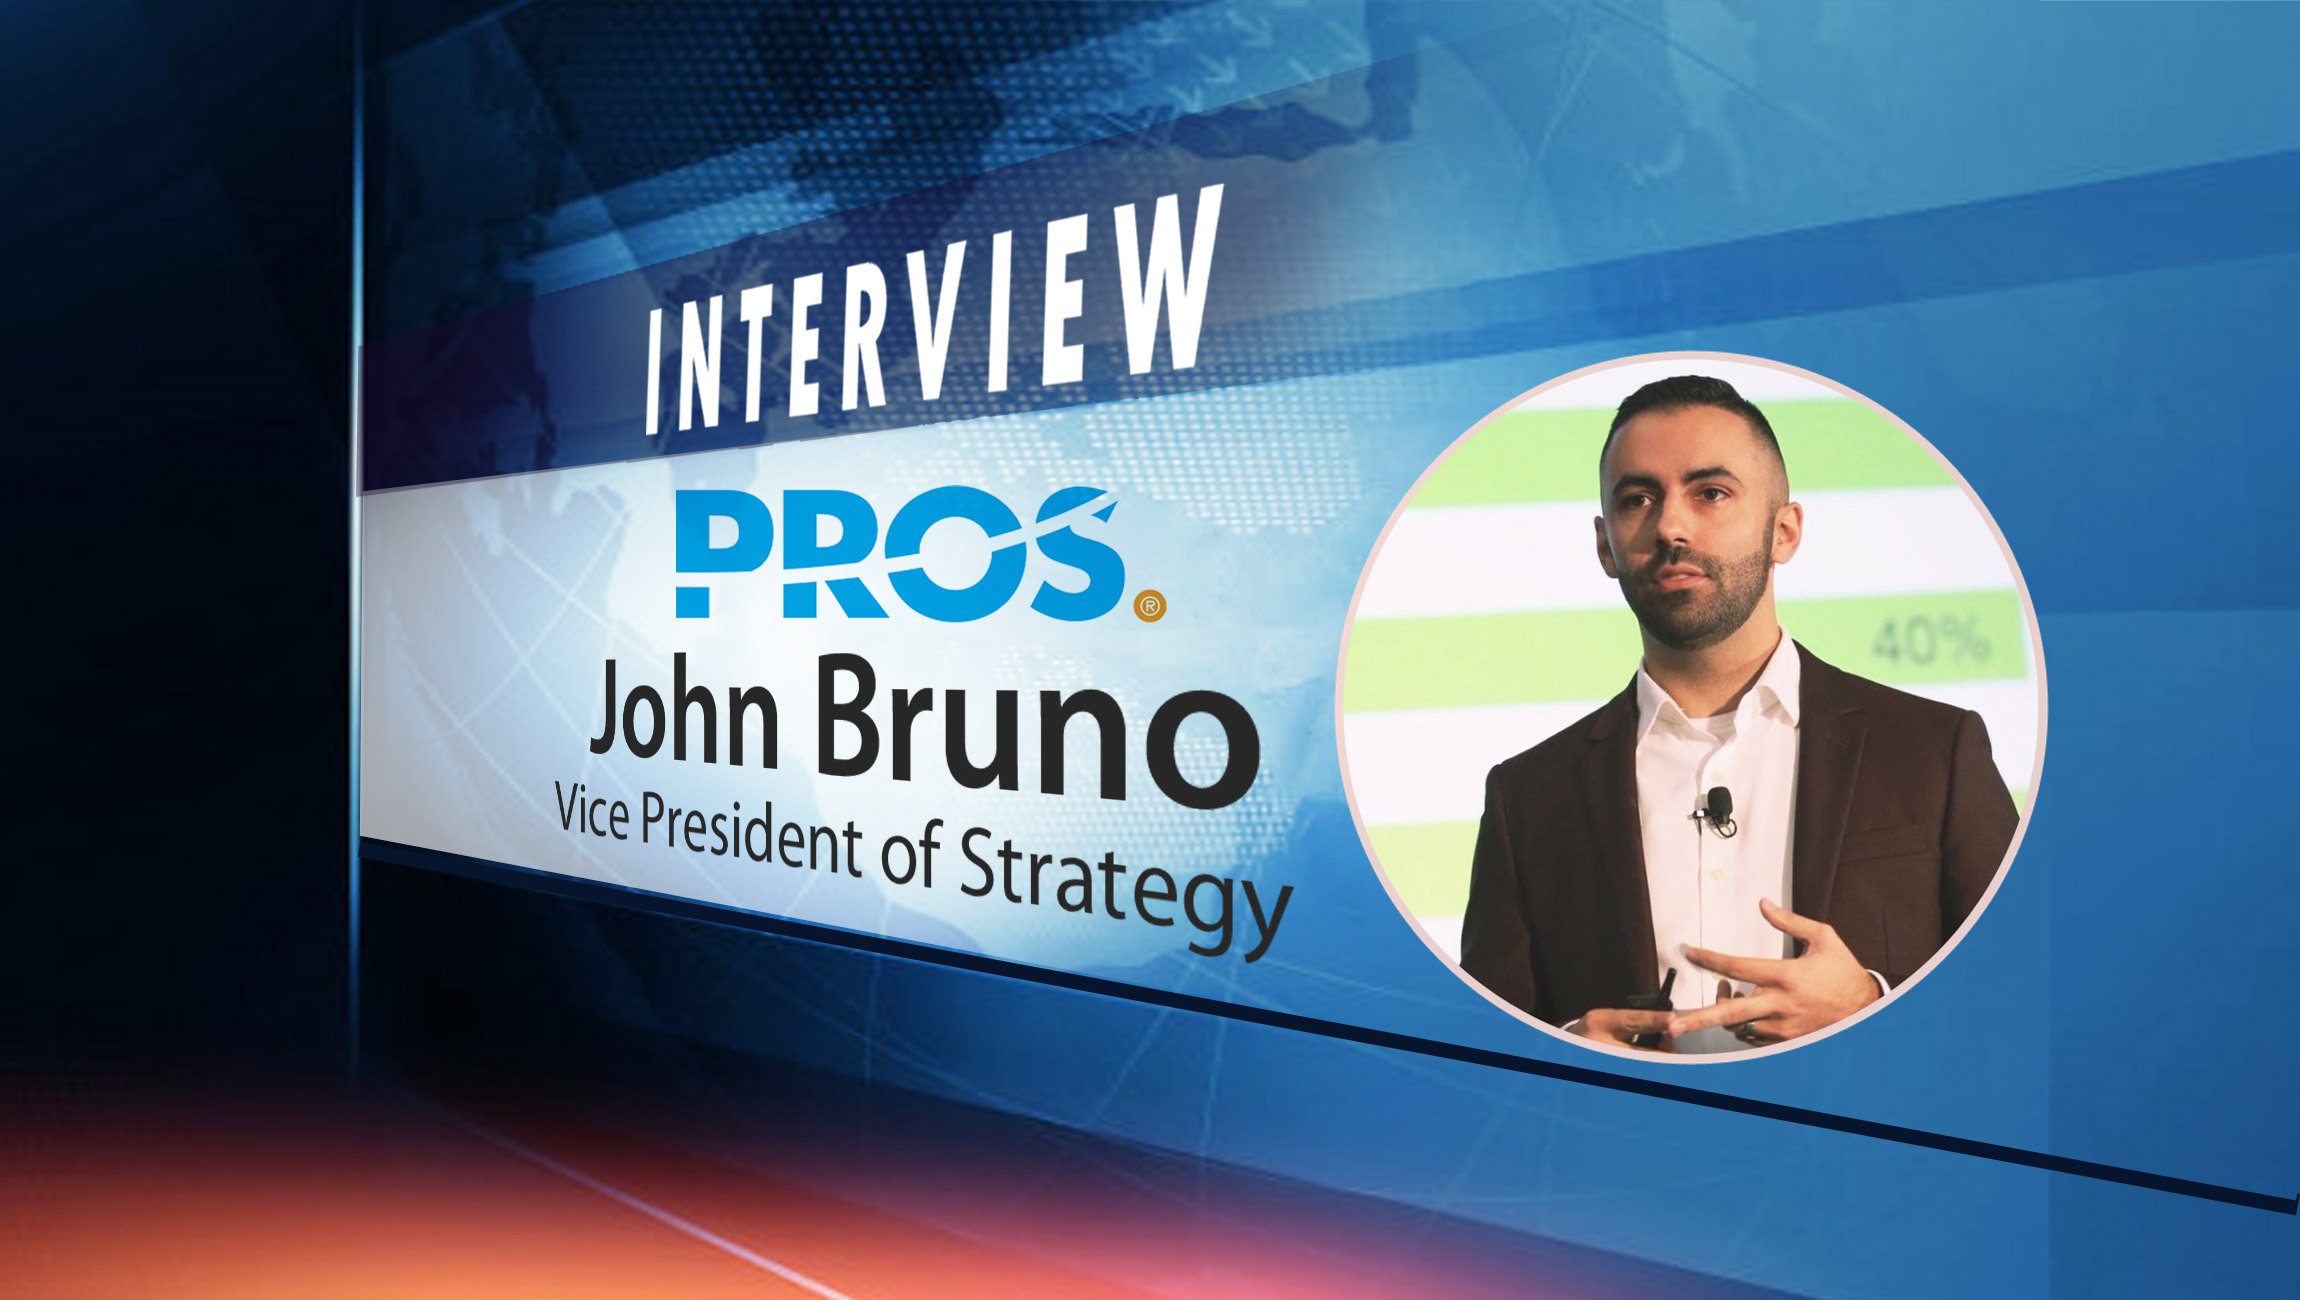 SalesTechStar Interview with John Bruno, Vice President of Strategy at PROS